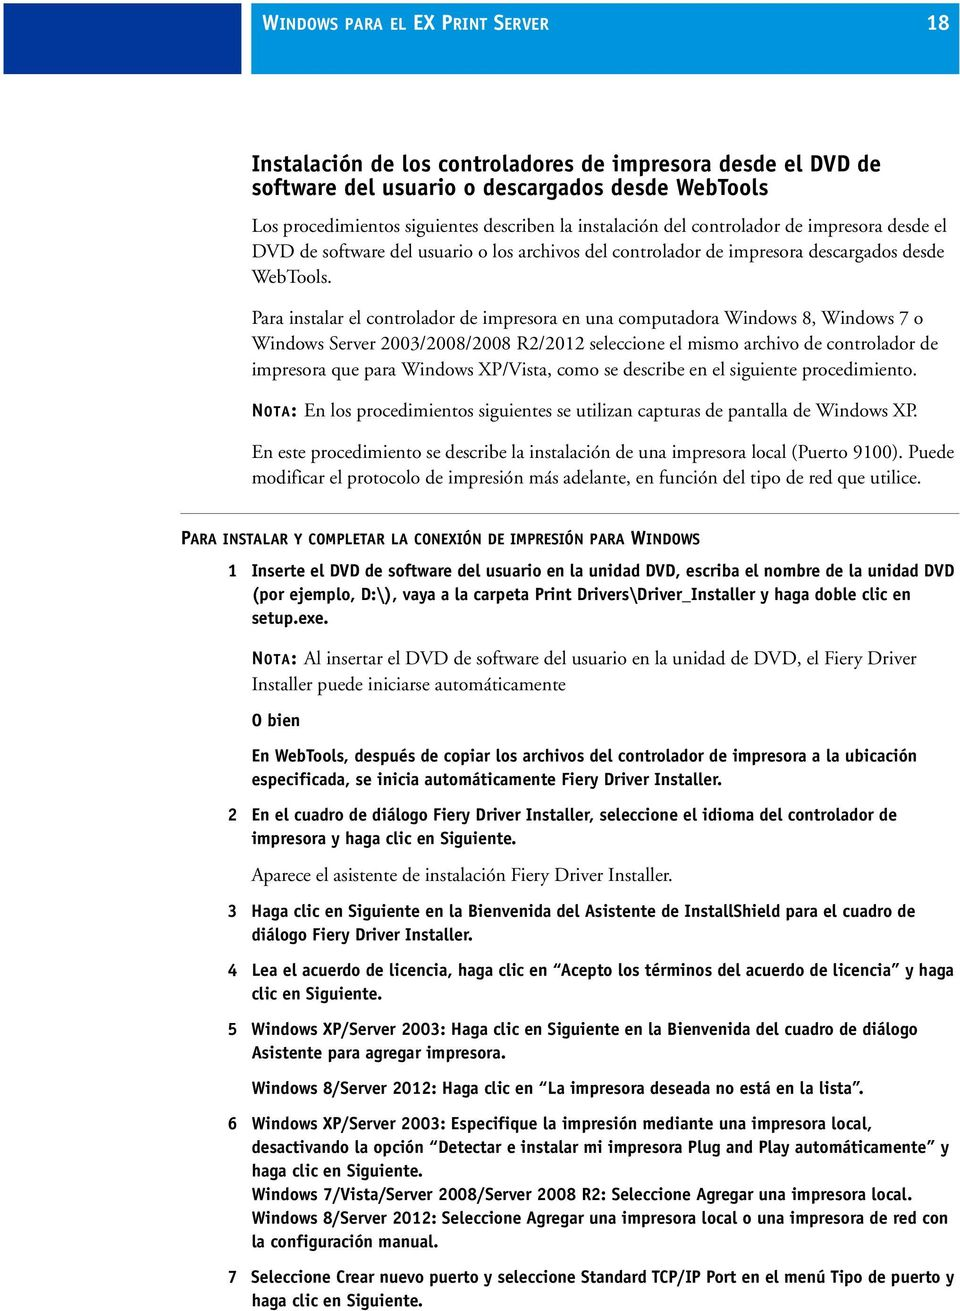 Para instalar el controlador de impresora en una computadora Windows 8, Windows 7 o Windows Server 2003/2008/2008 R2/2012 seleccione el mismo archivo de controlador de impresora que para Windows